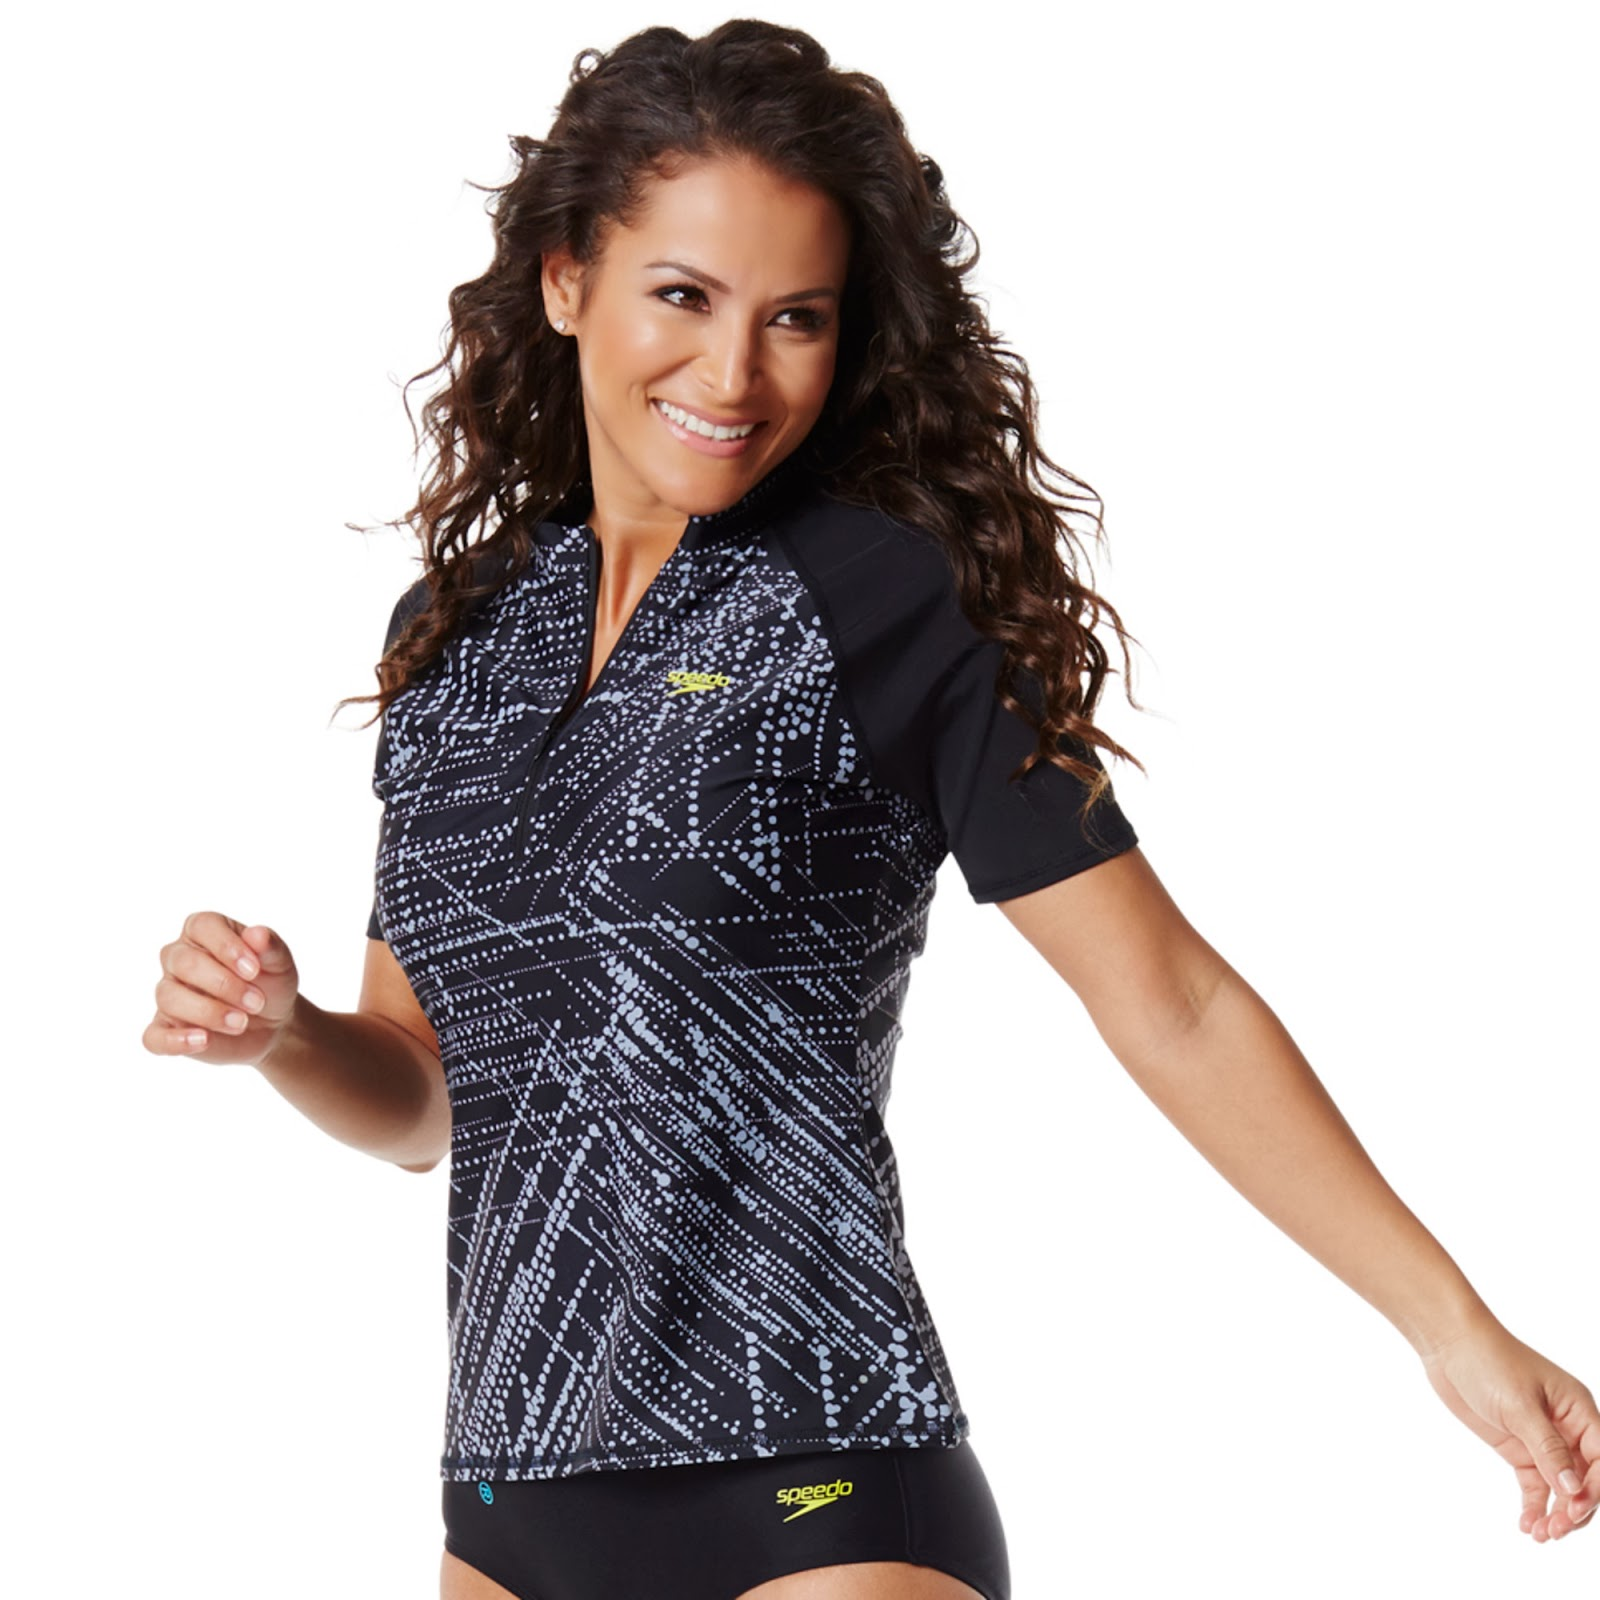 http://www.zumba.com/en-US/store-zin/US/product/show-me-what-you-dot?color=Black